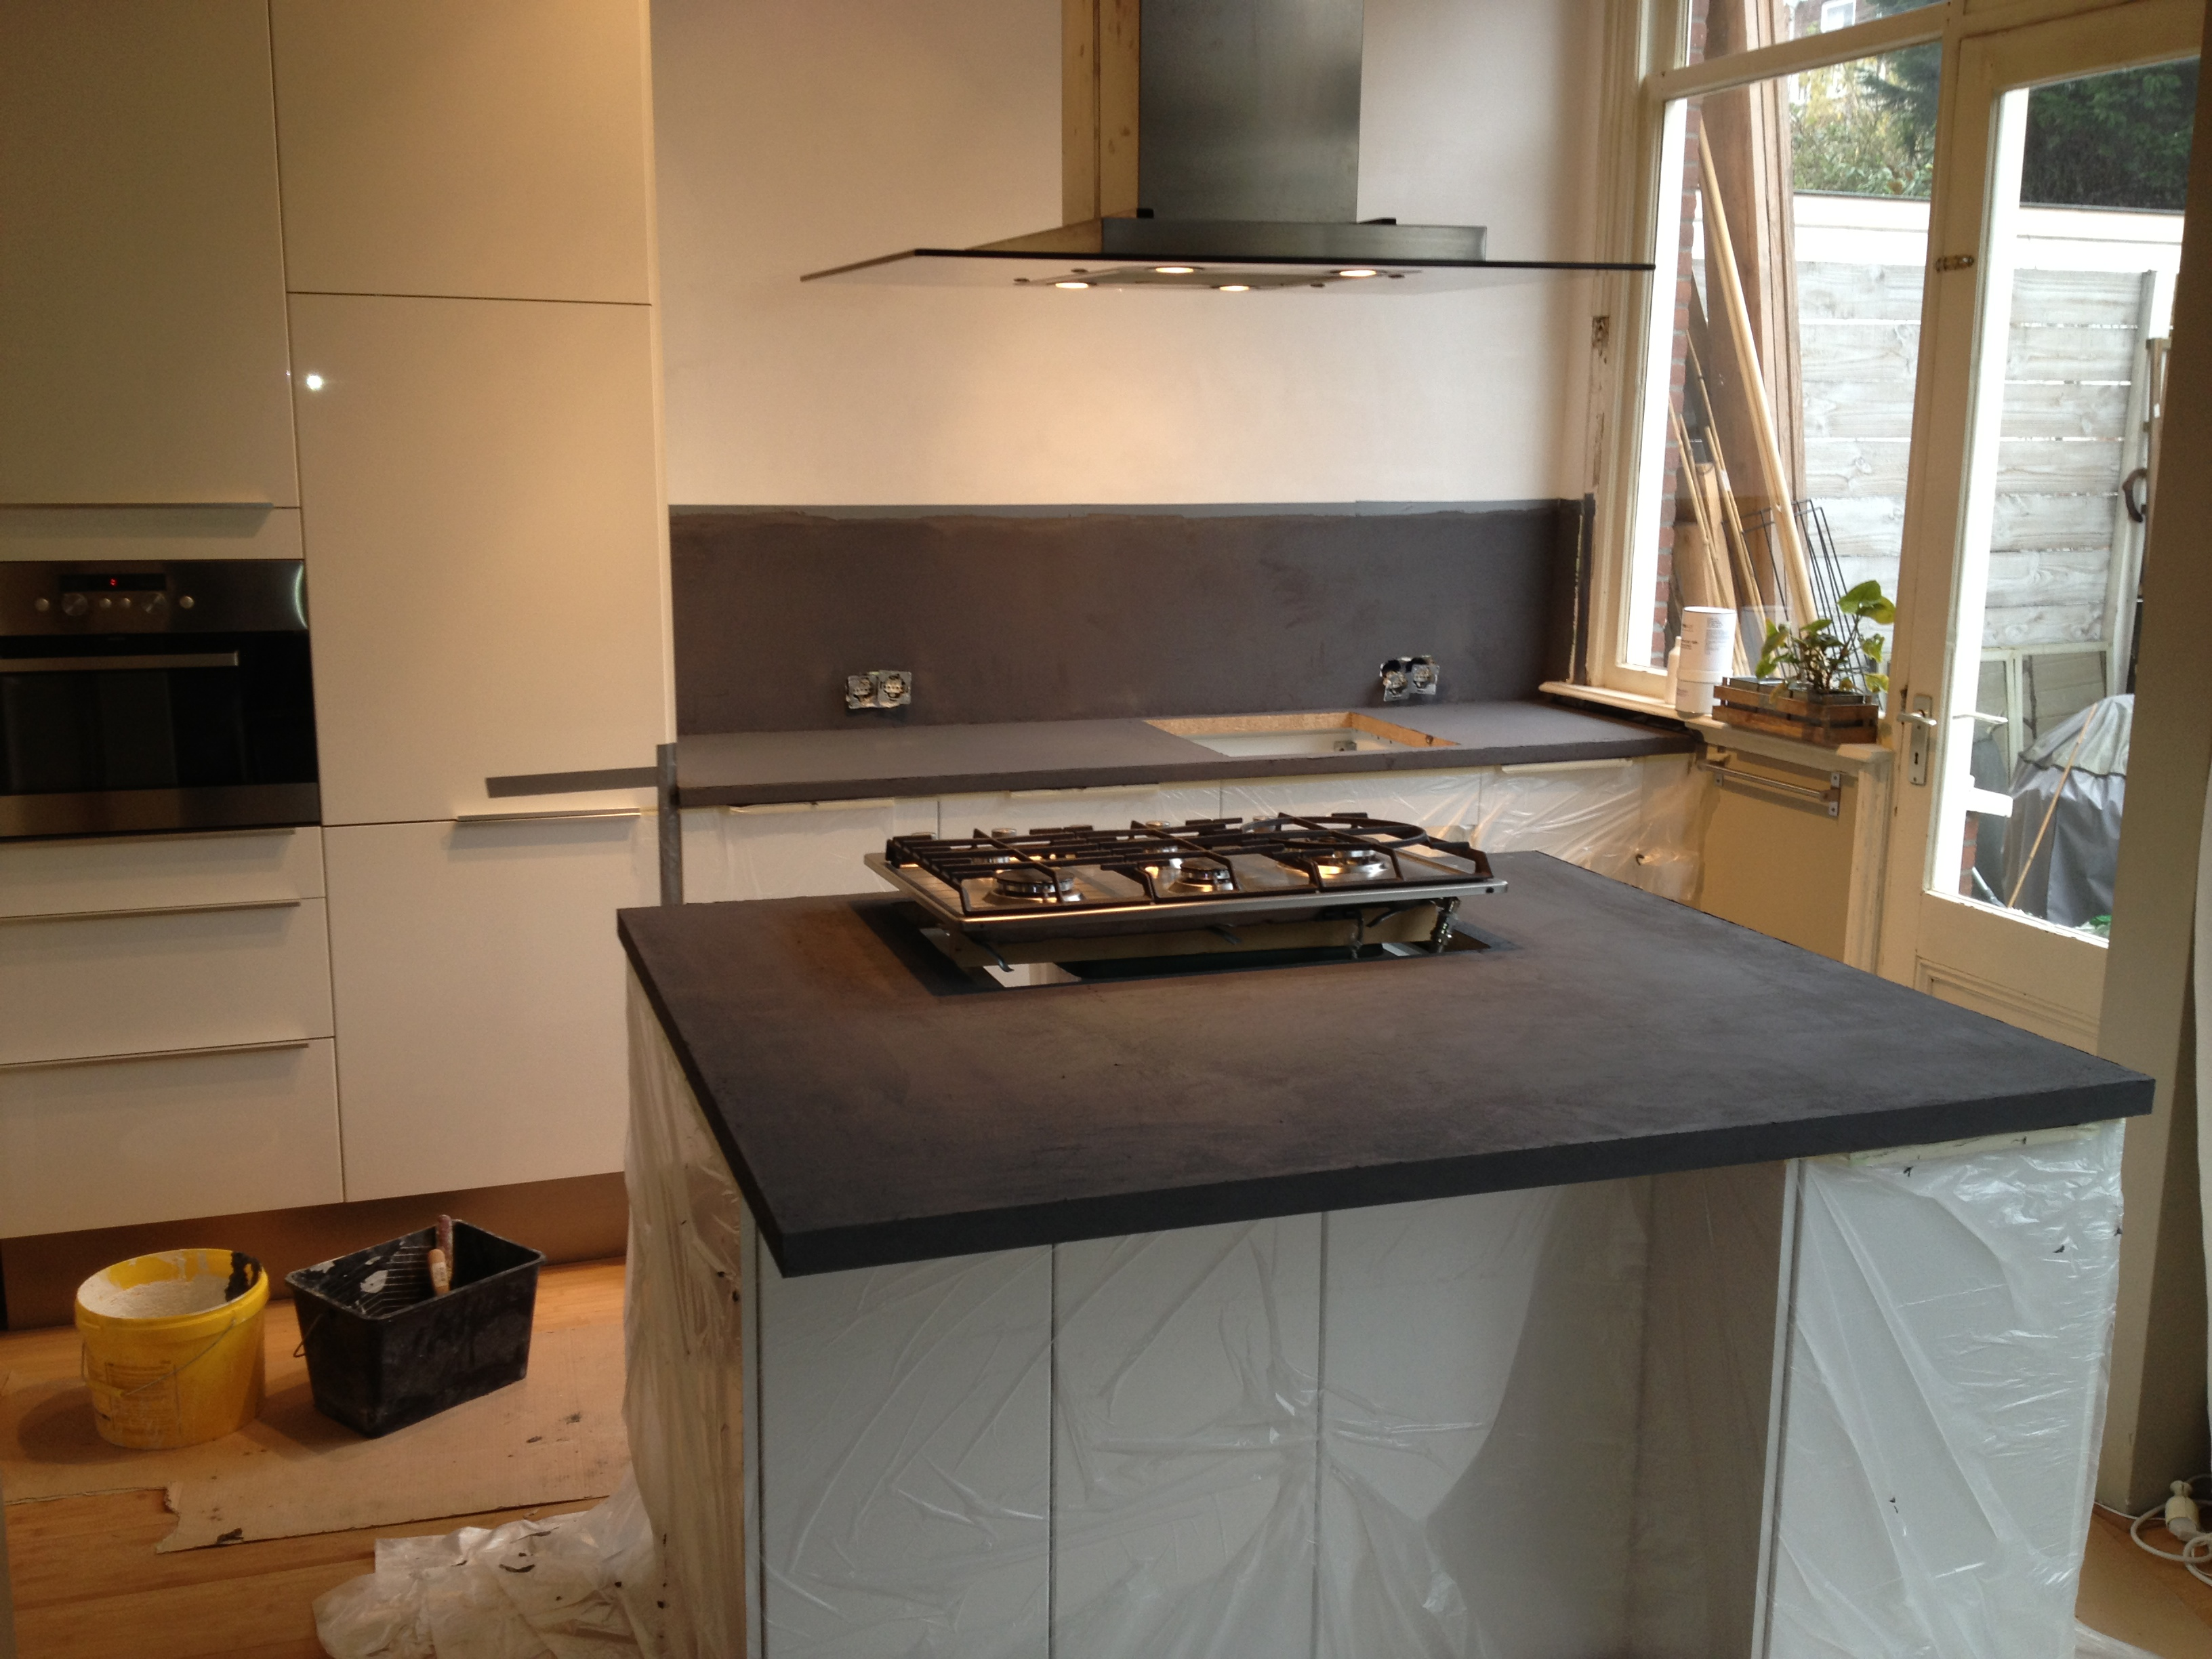 Beton Cire Keuken Wand : Beton Cir? Keuken Pictures to pin on Pinterest